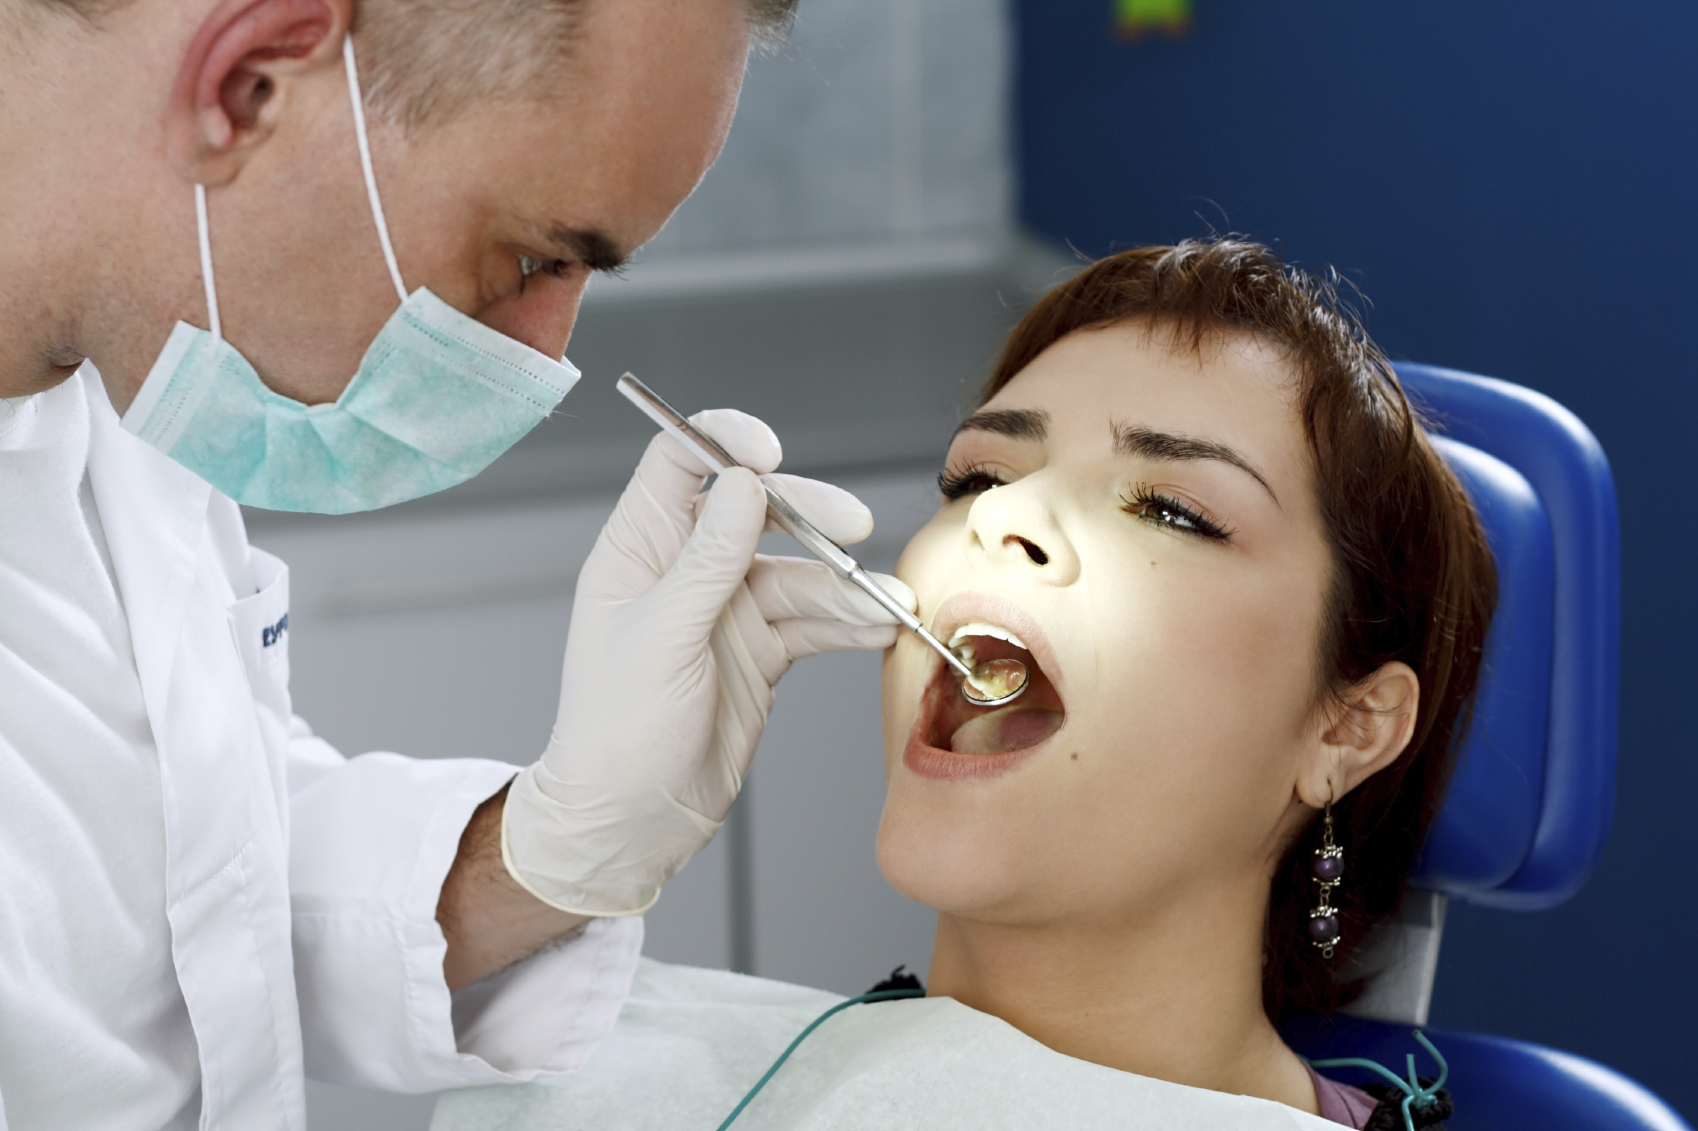 Oral Infections Lead To Rise In Hospitalizations The